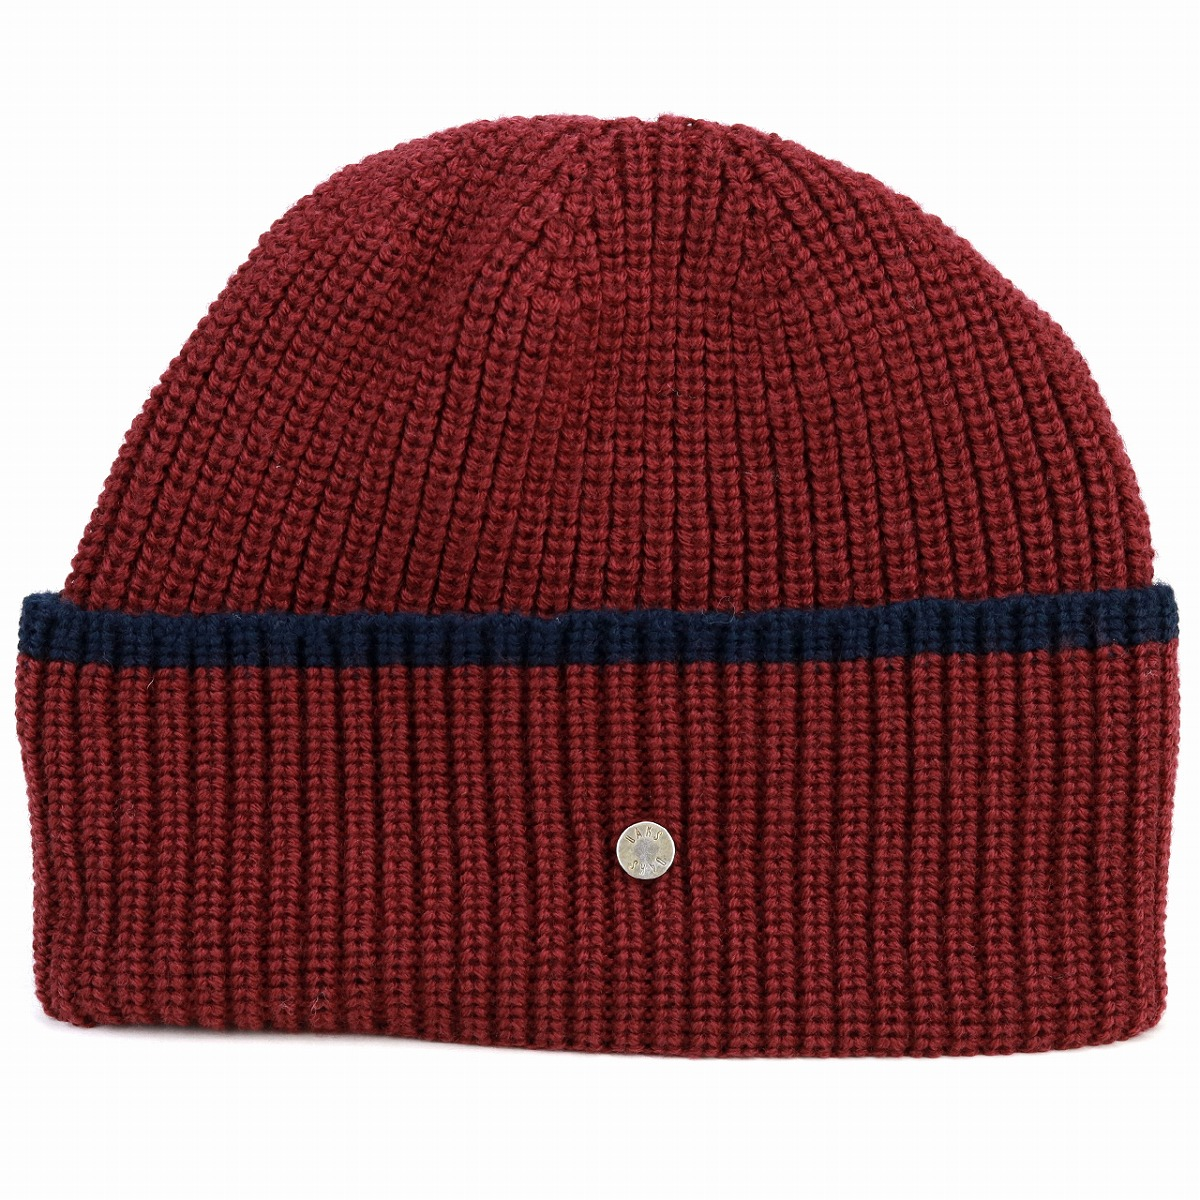 Red Bordeaux  beanie cap  man Christmas present hat with product made in  Daks knit ... 3e2d8d18629